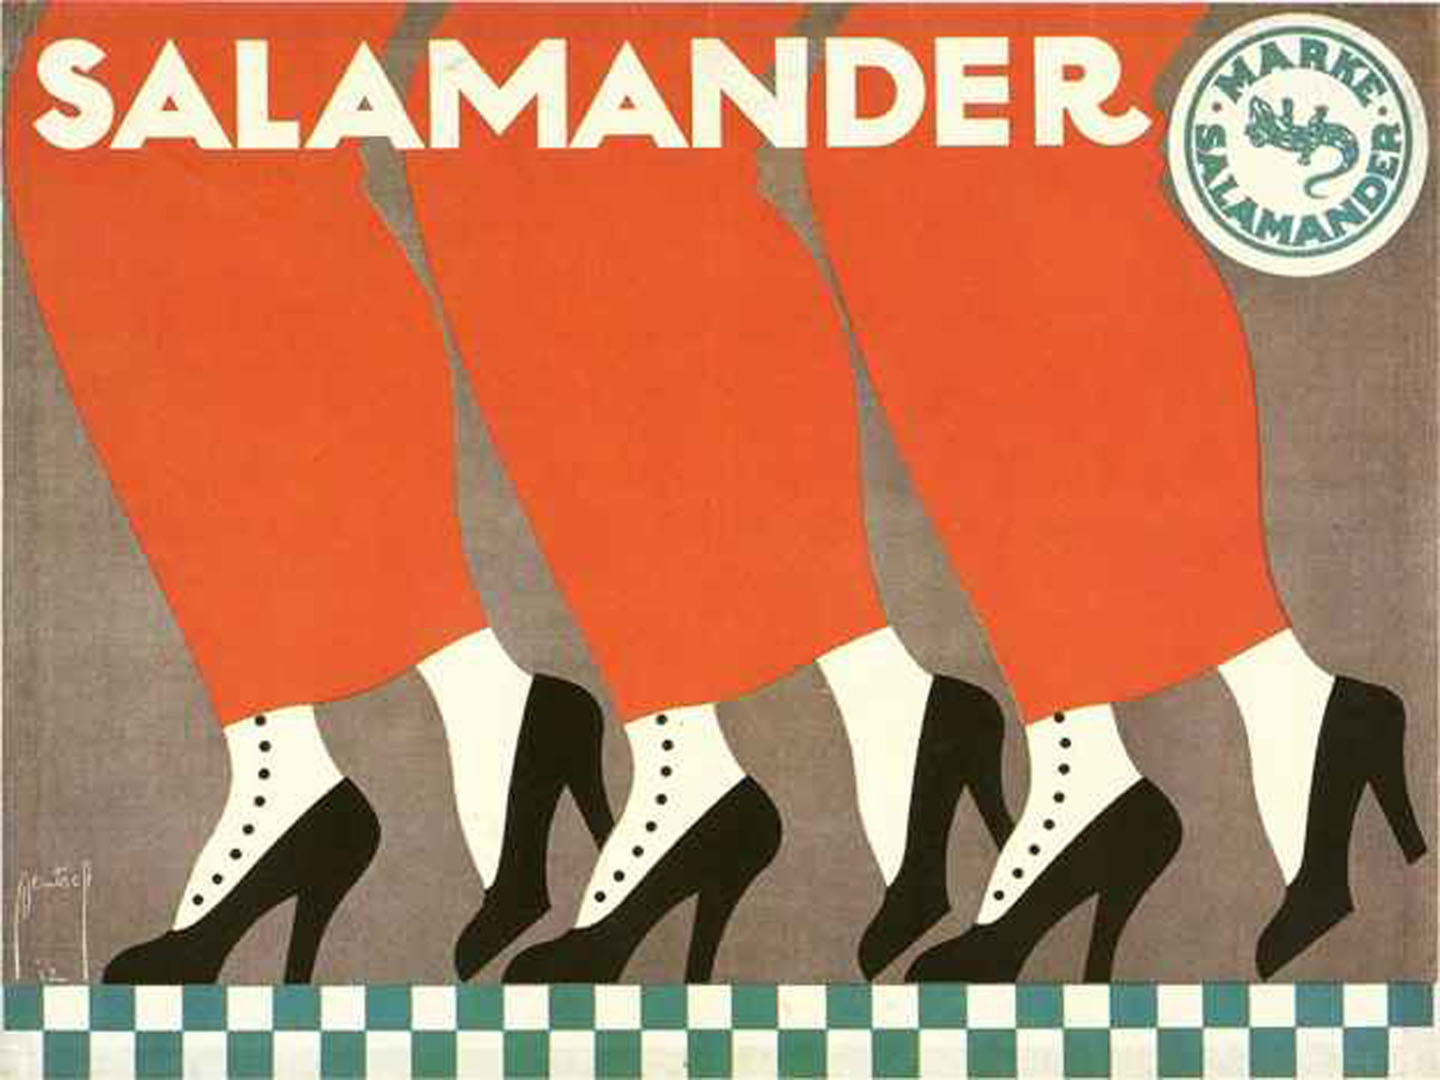 Salamander Shoes - vintage ad posters wallpaper image